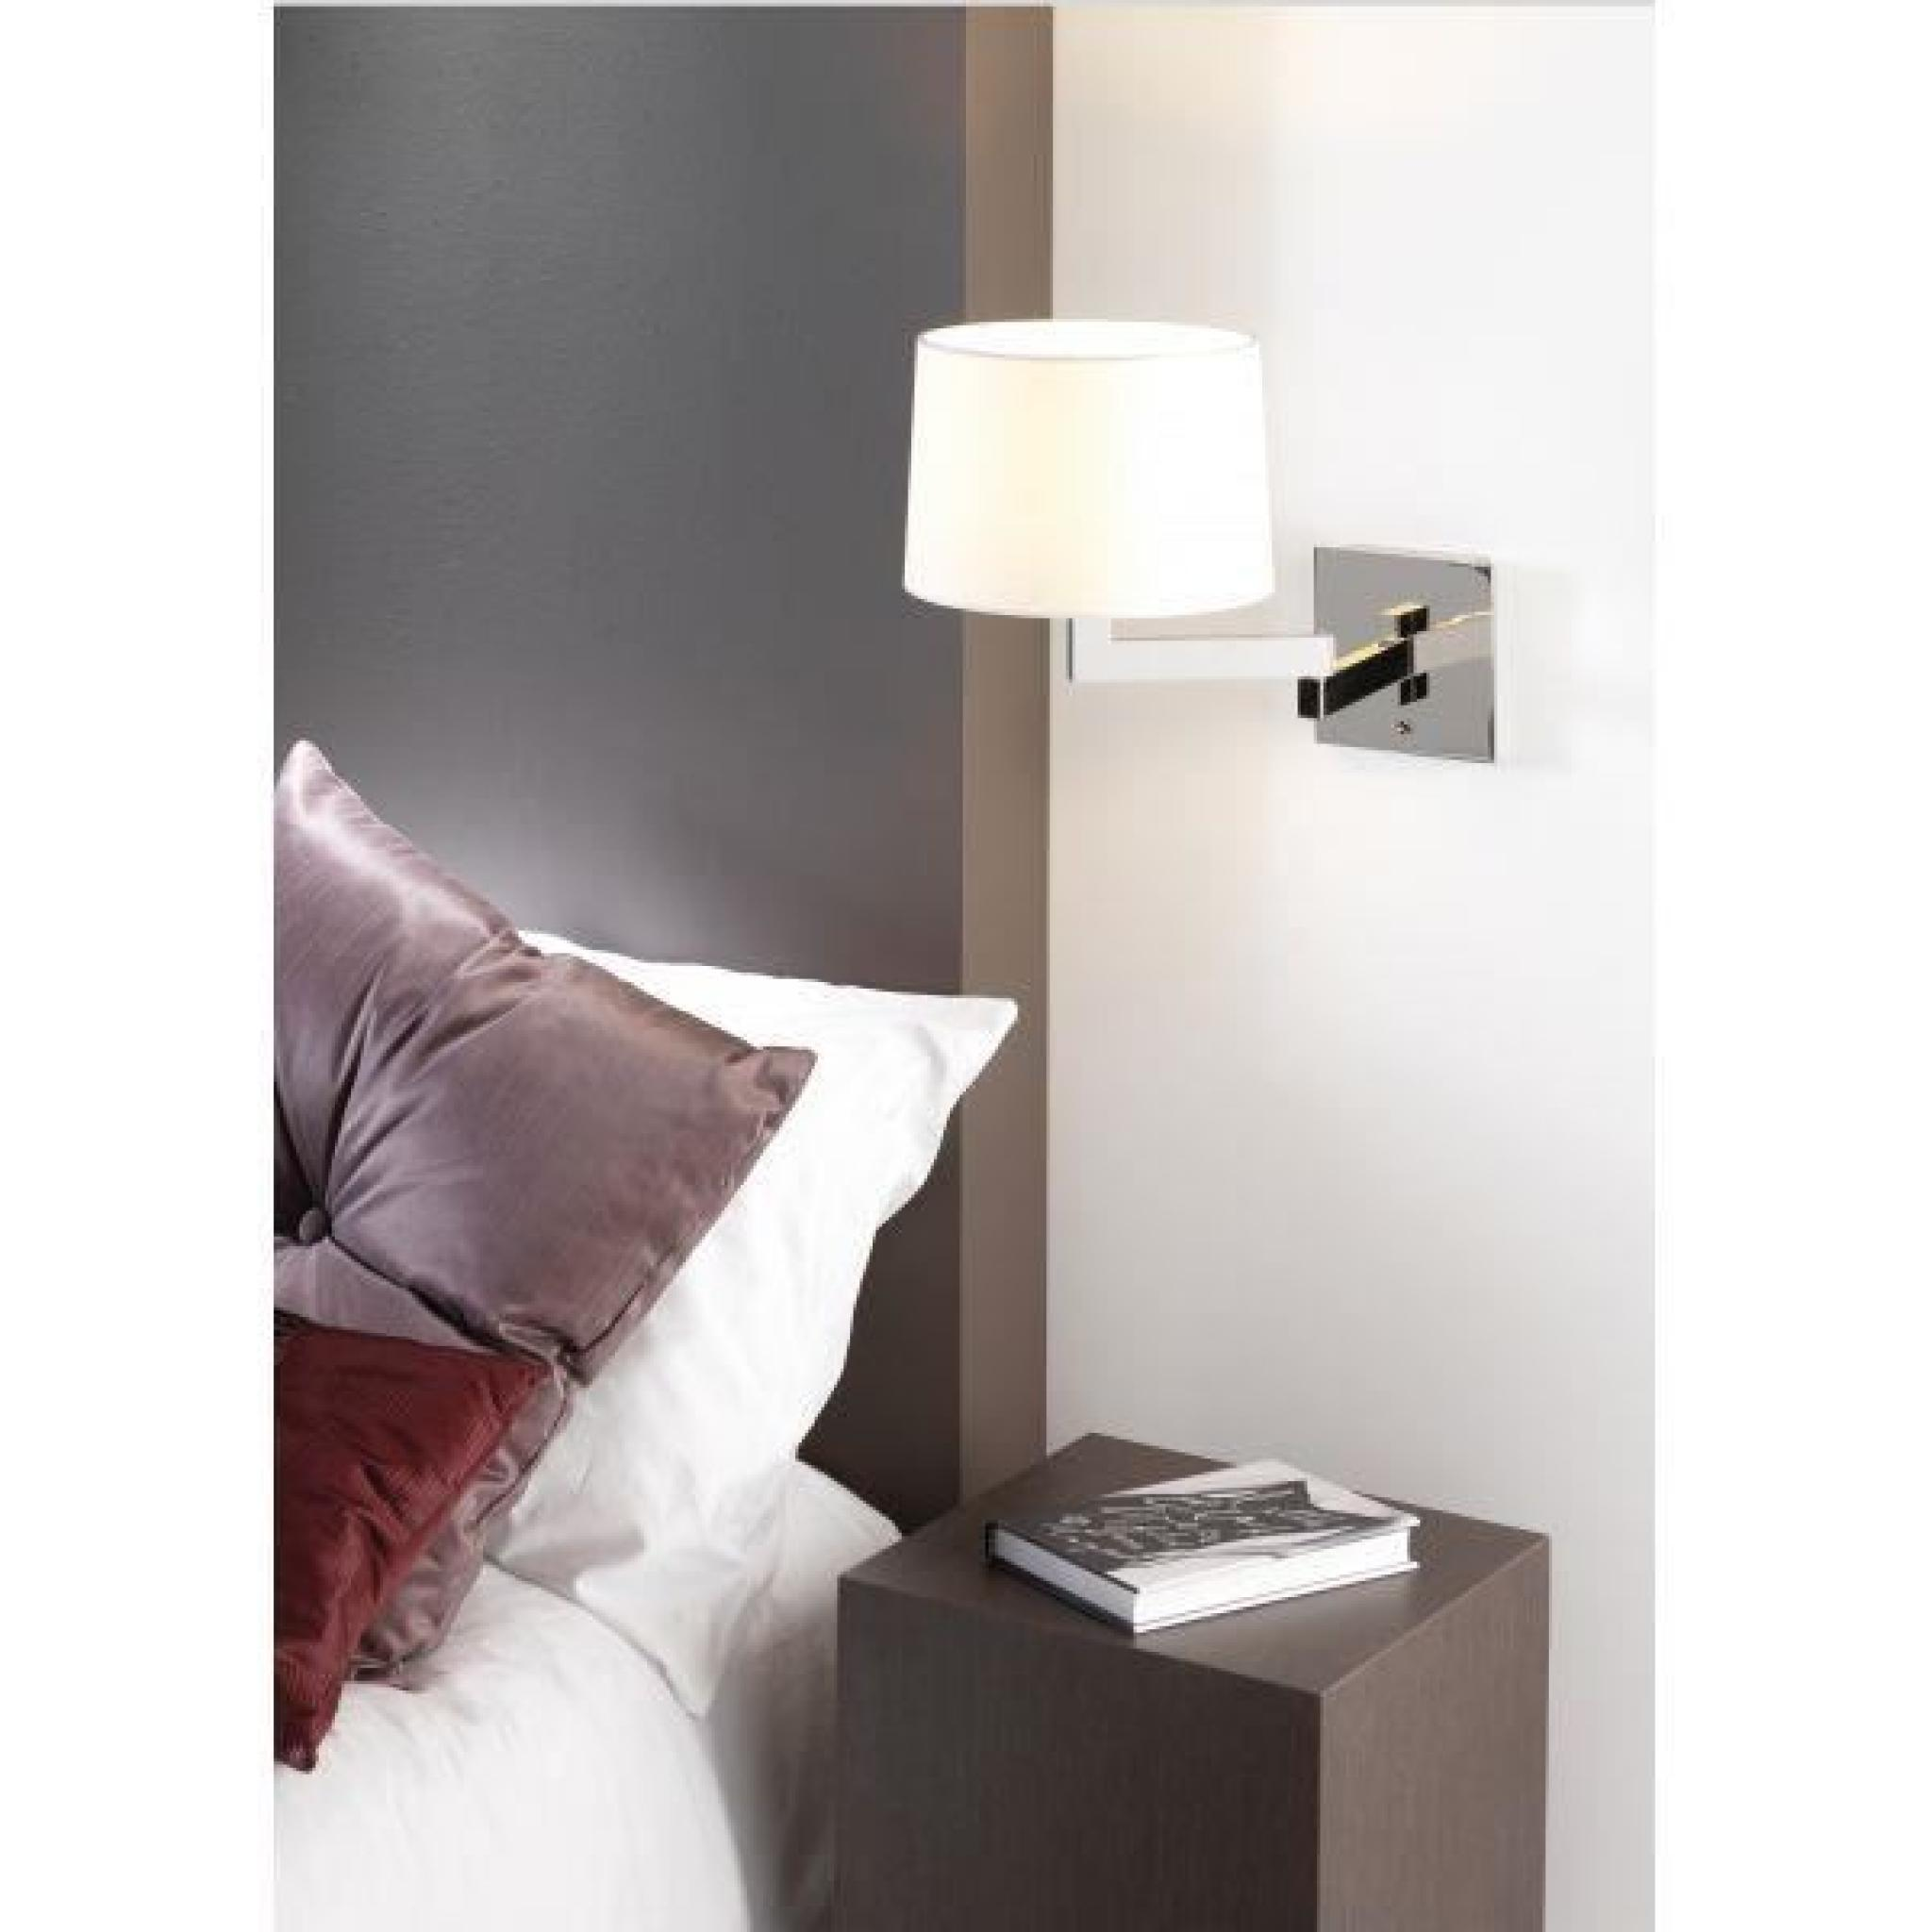 applique murale momo avec liseuse led nickel mat achat. Black Bedroom Furniture Sets. Home Design Ideas